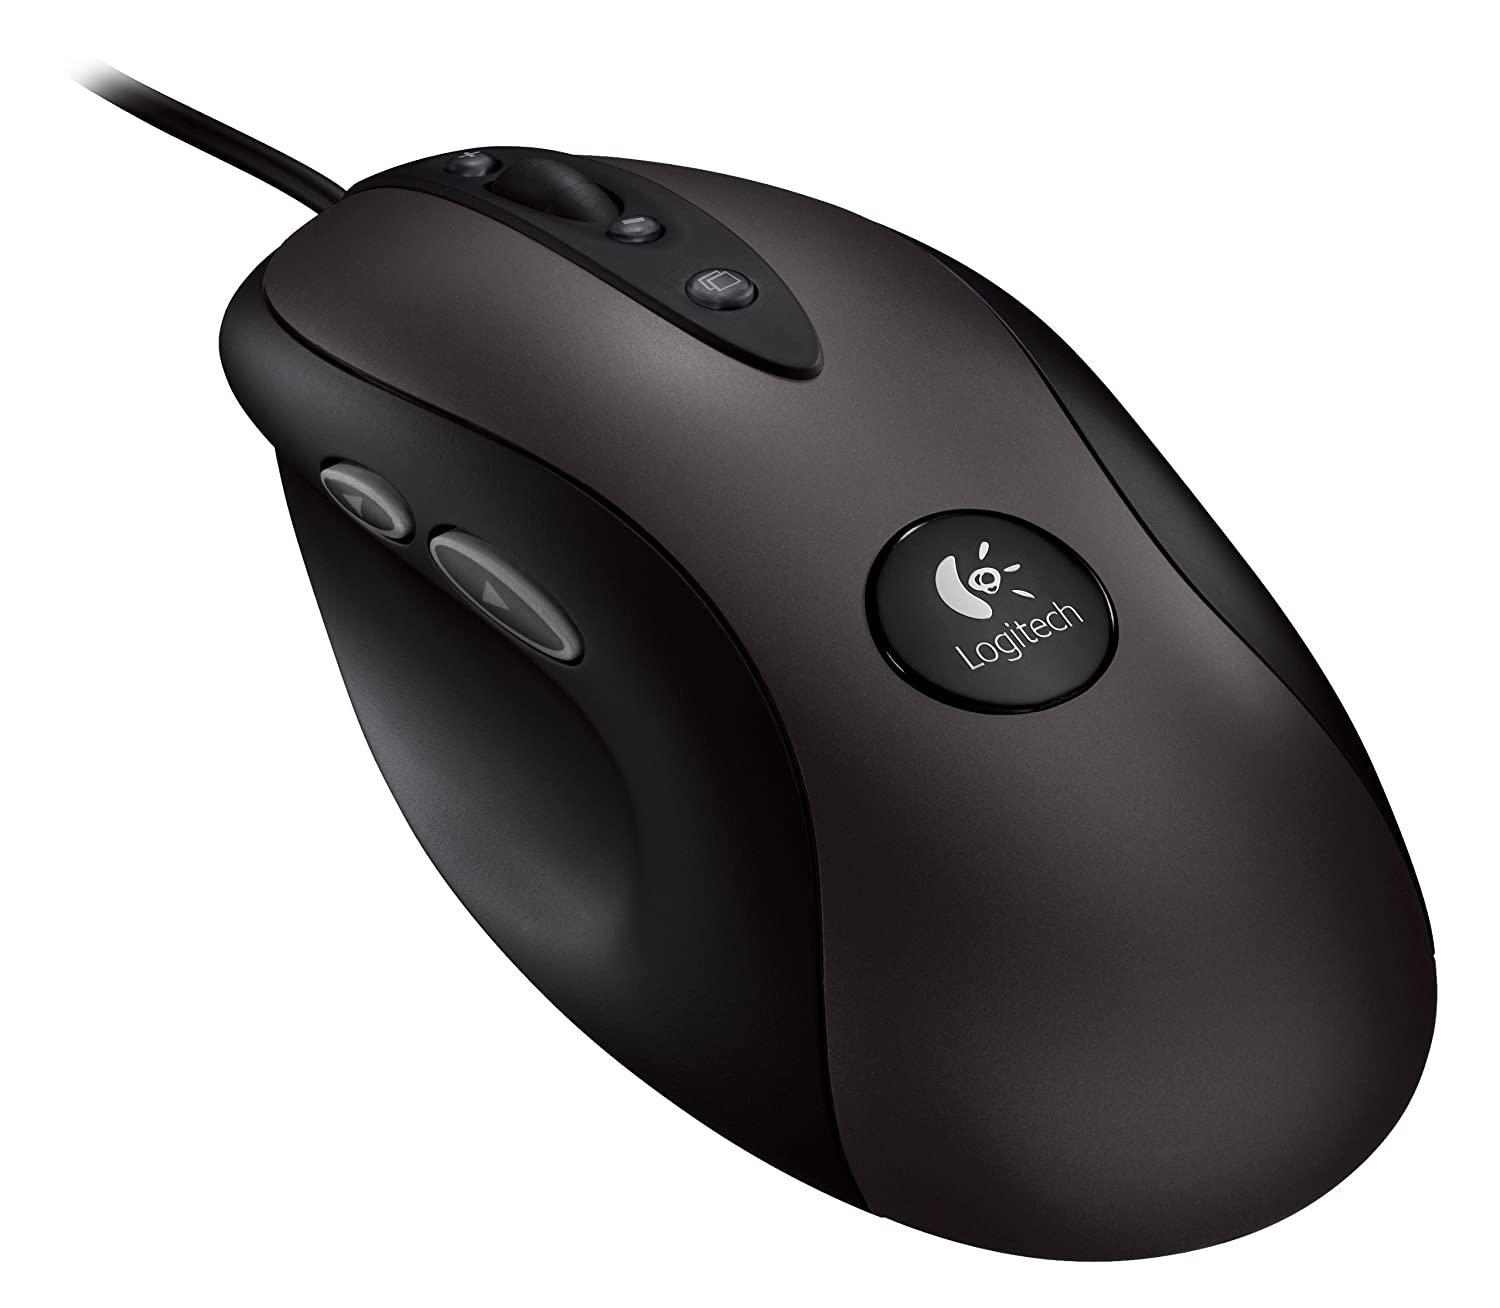 Logitech Optical Gaming Mouse G400 with High-Precision 3600 DPI Optical Engine $29.44